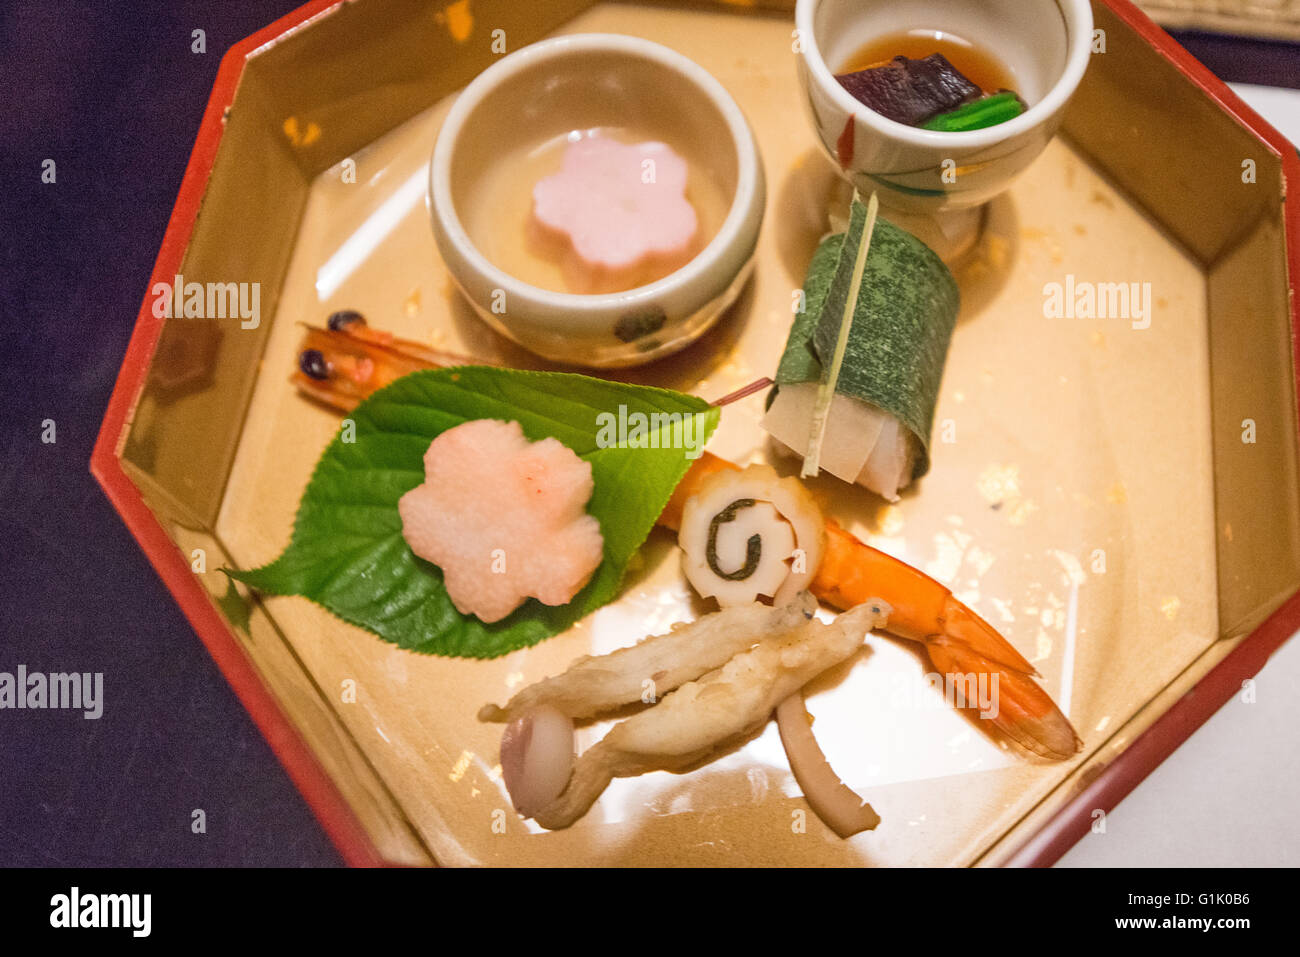 Decorative Japanese food design in a box